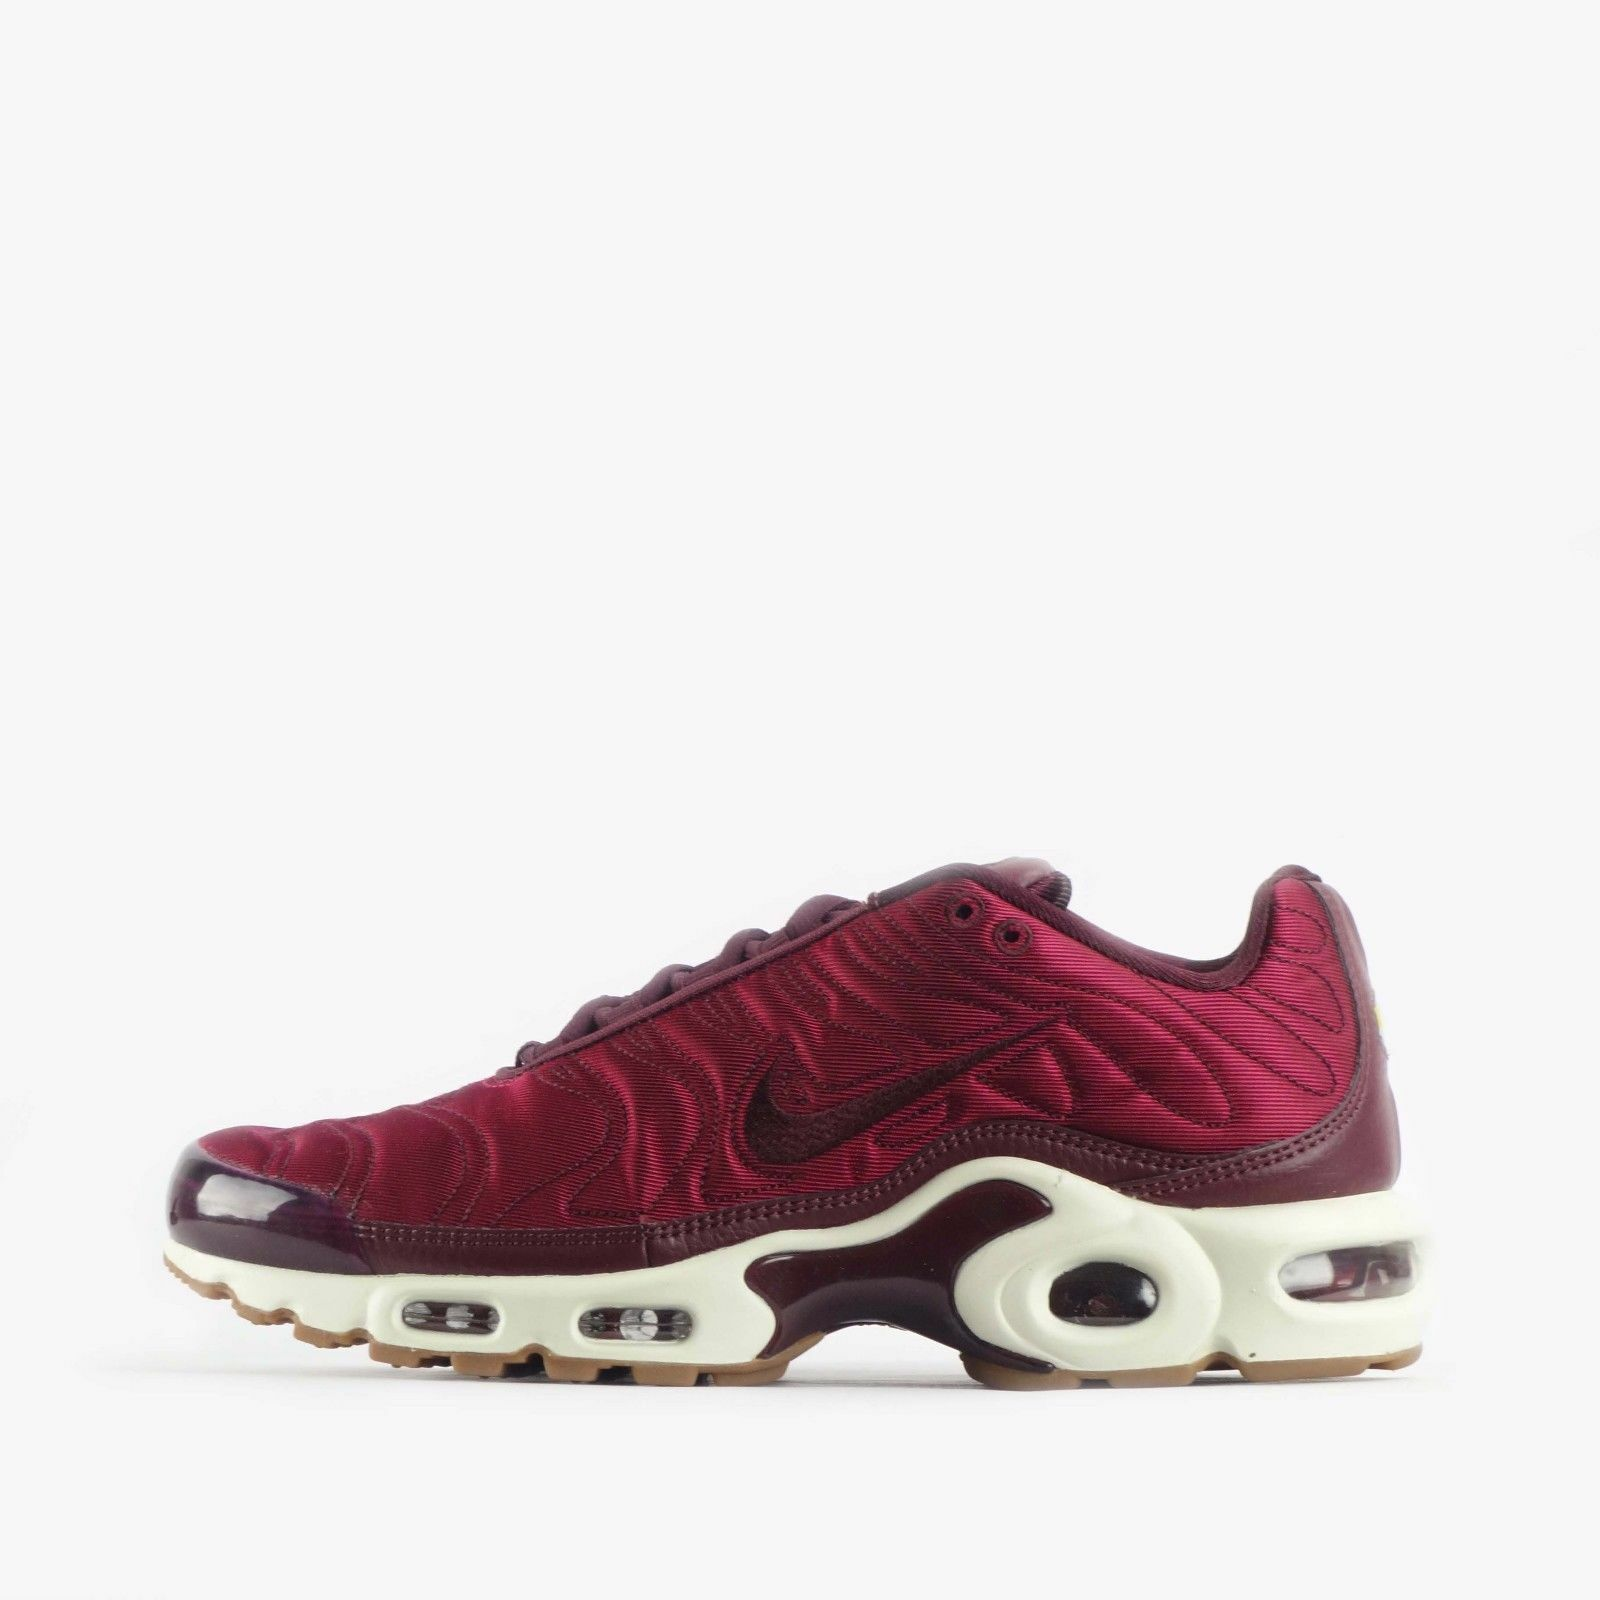 Nike damen  AIR MAX PLUS Trainers Night Maroon UK 6 EU 40 LN088 OO 11